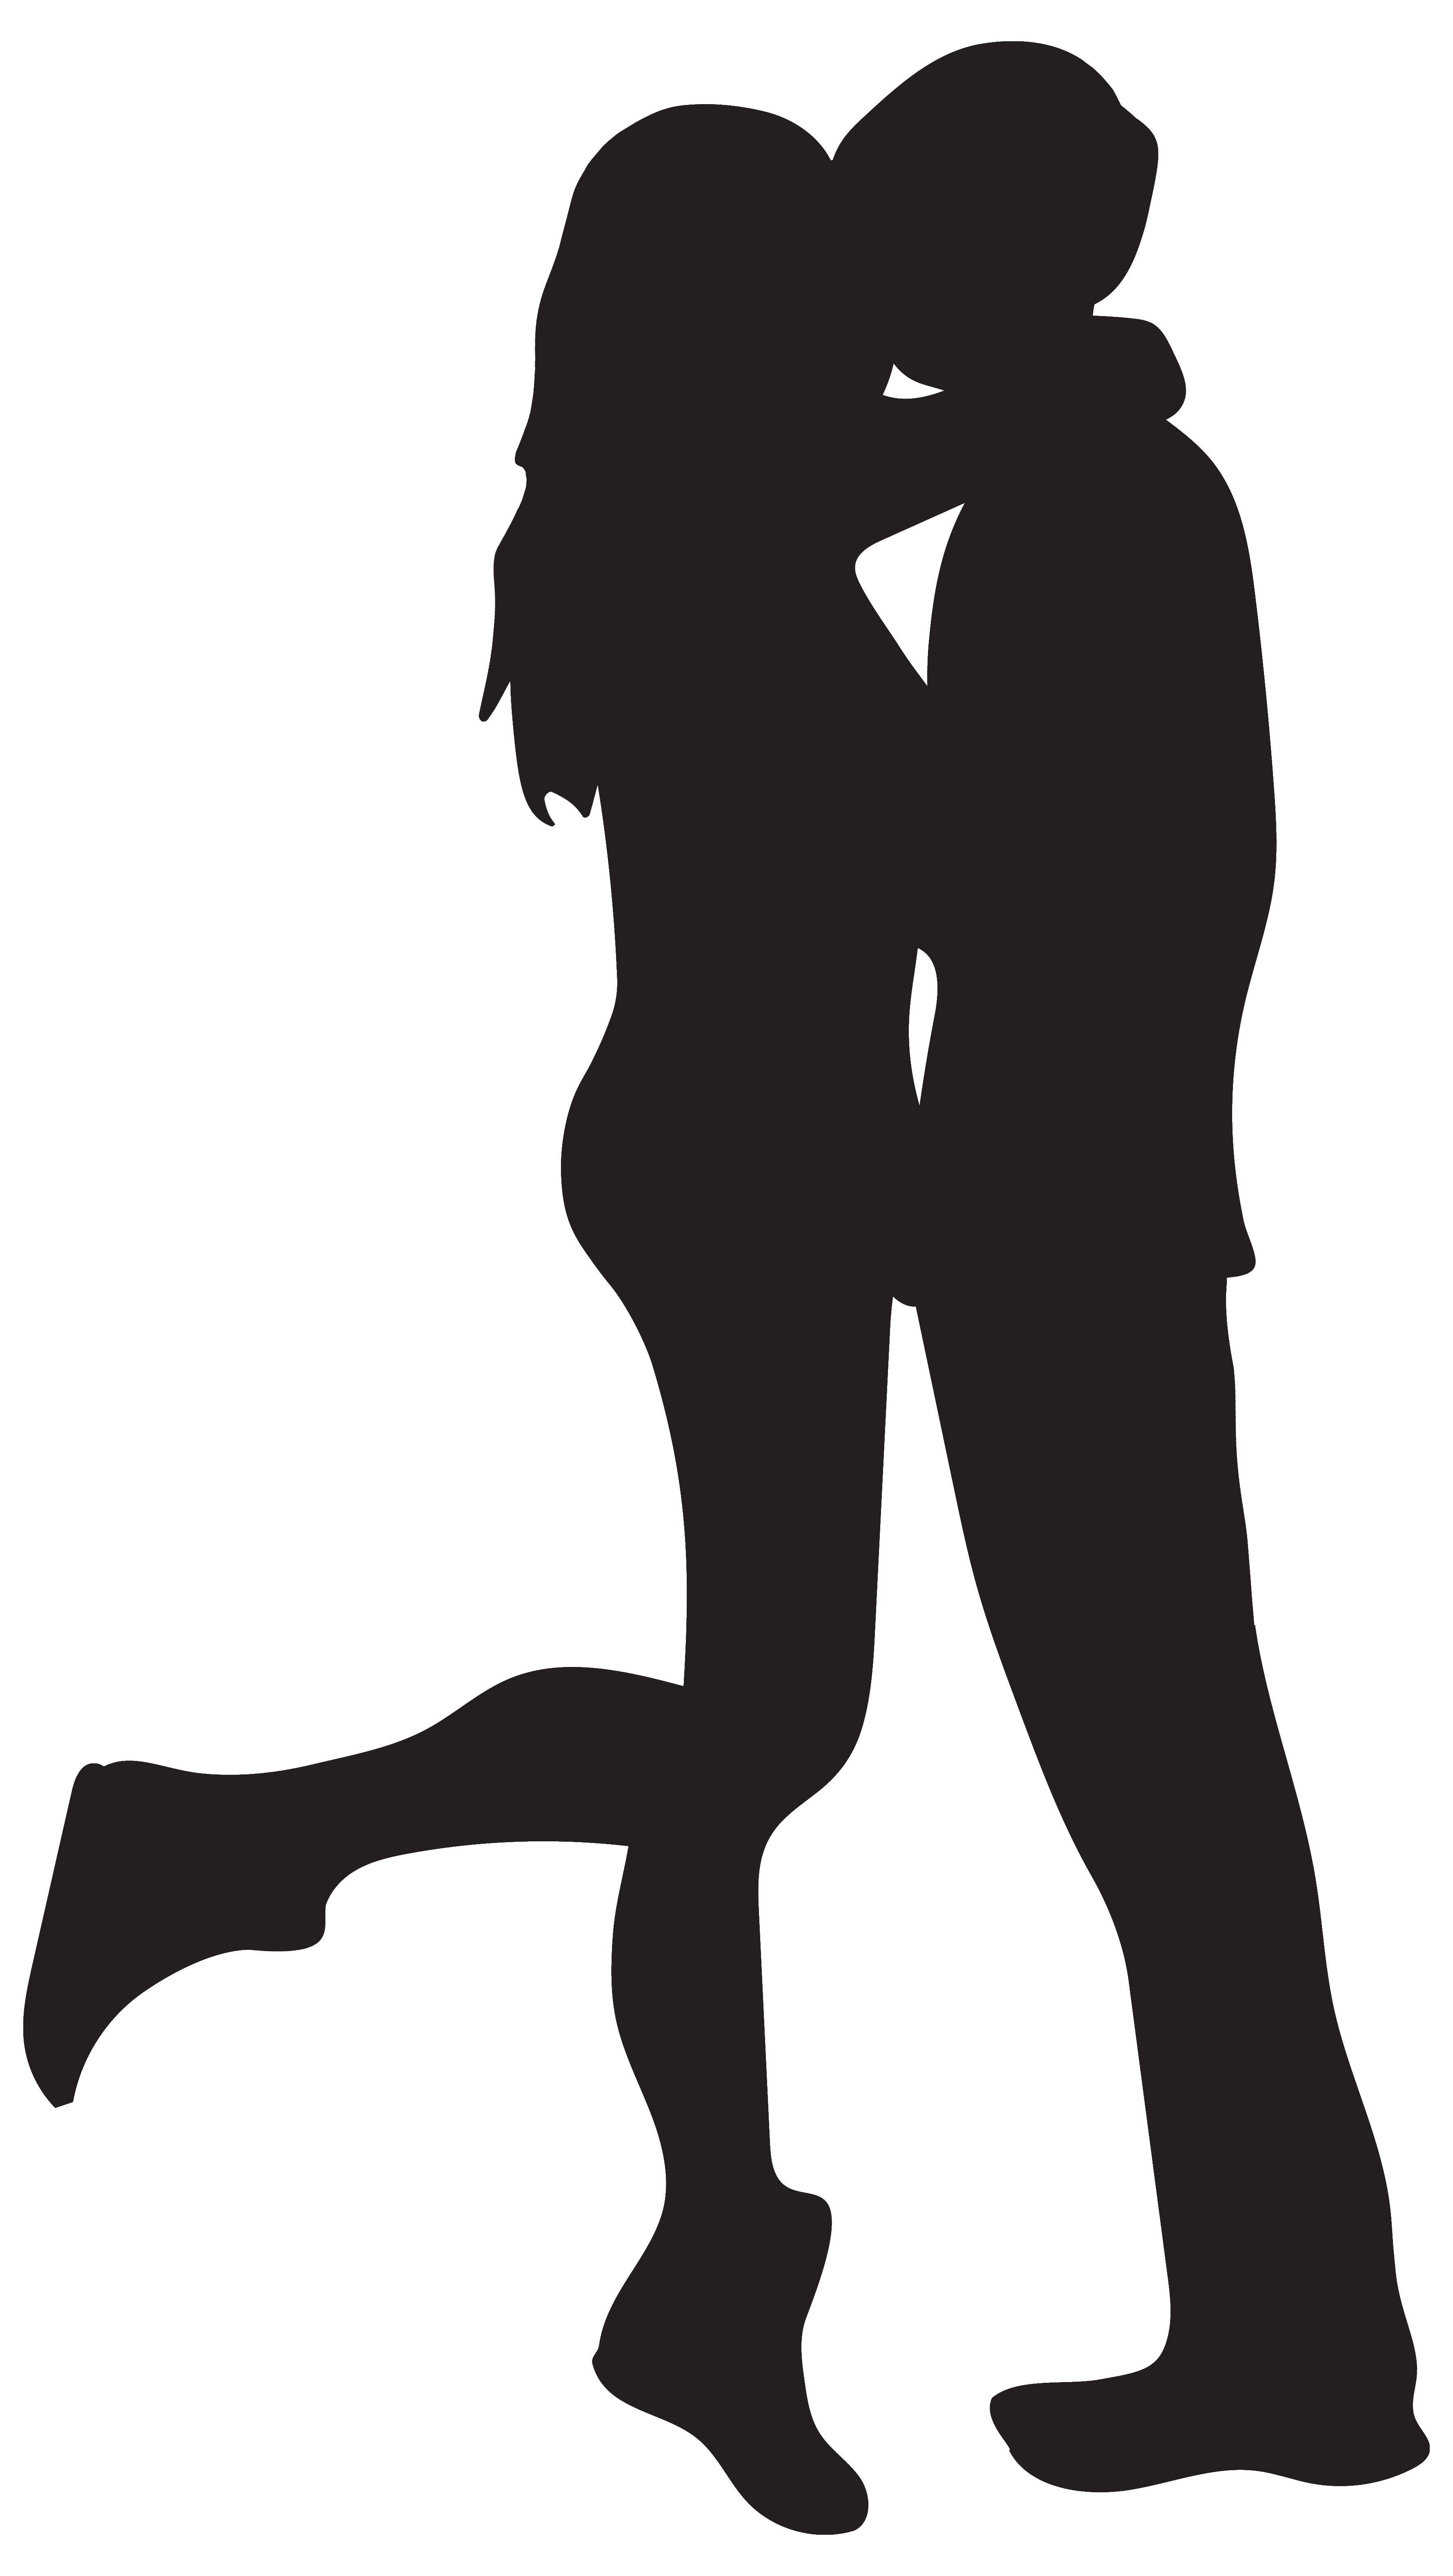 Kissing clipart Clipart PNG Silhouettes Image Gallery